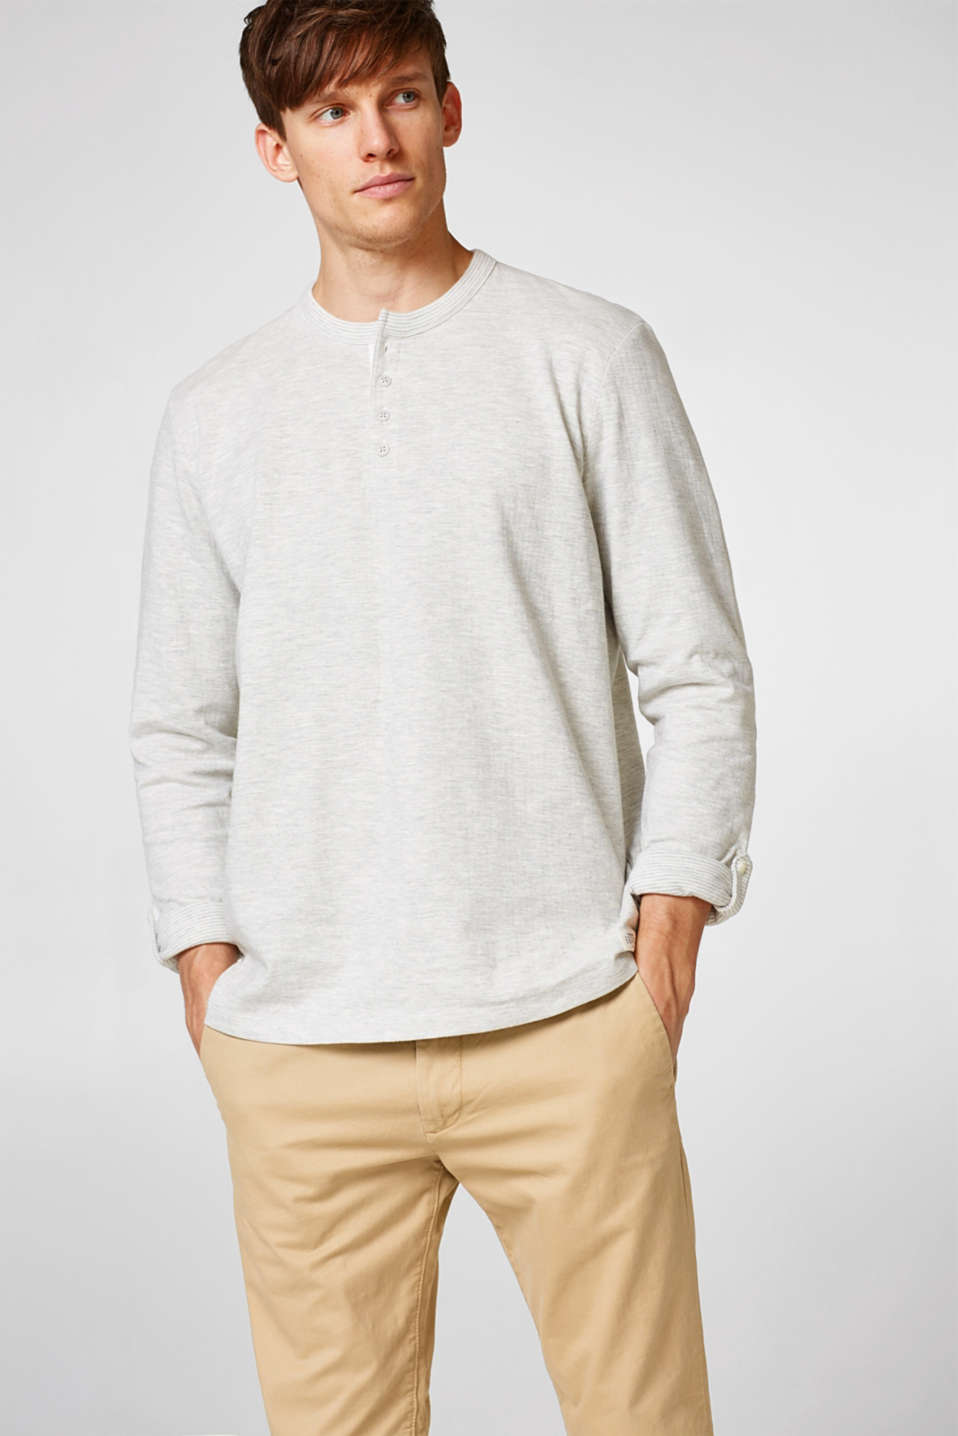 Esprit - Double-faced jersey long sleeve top